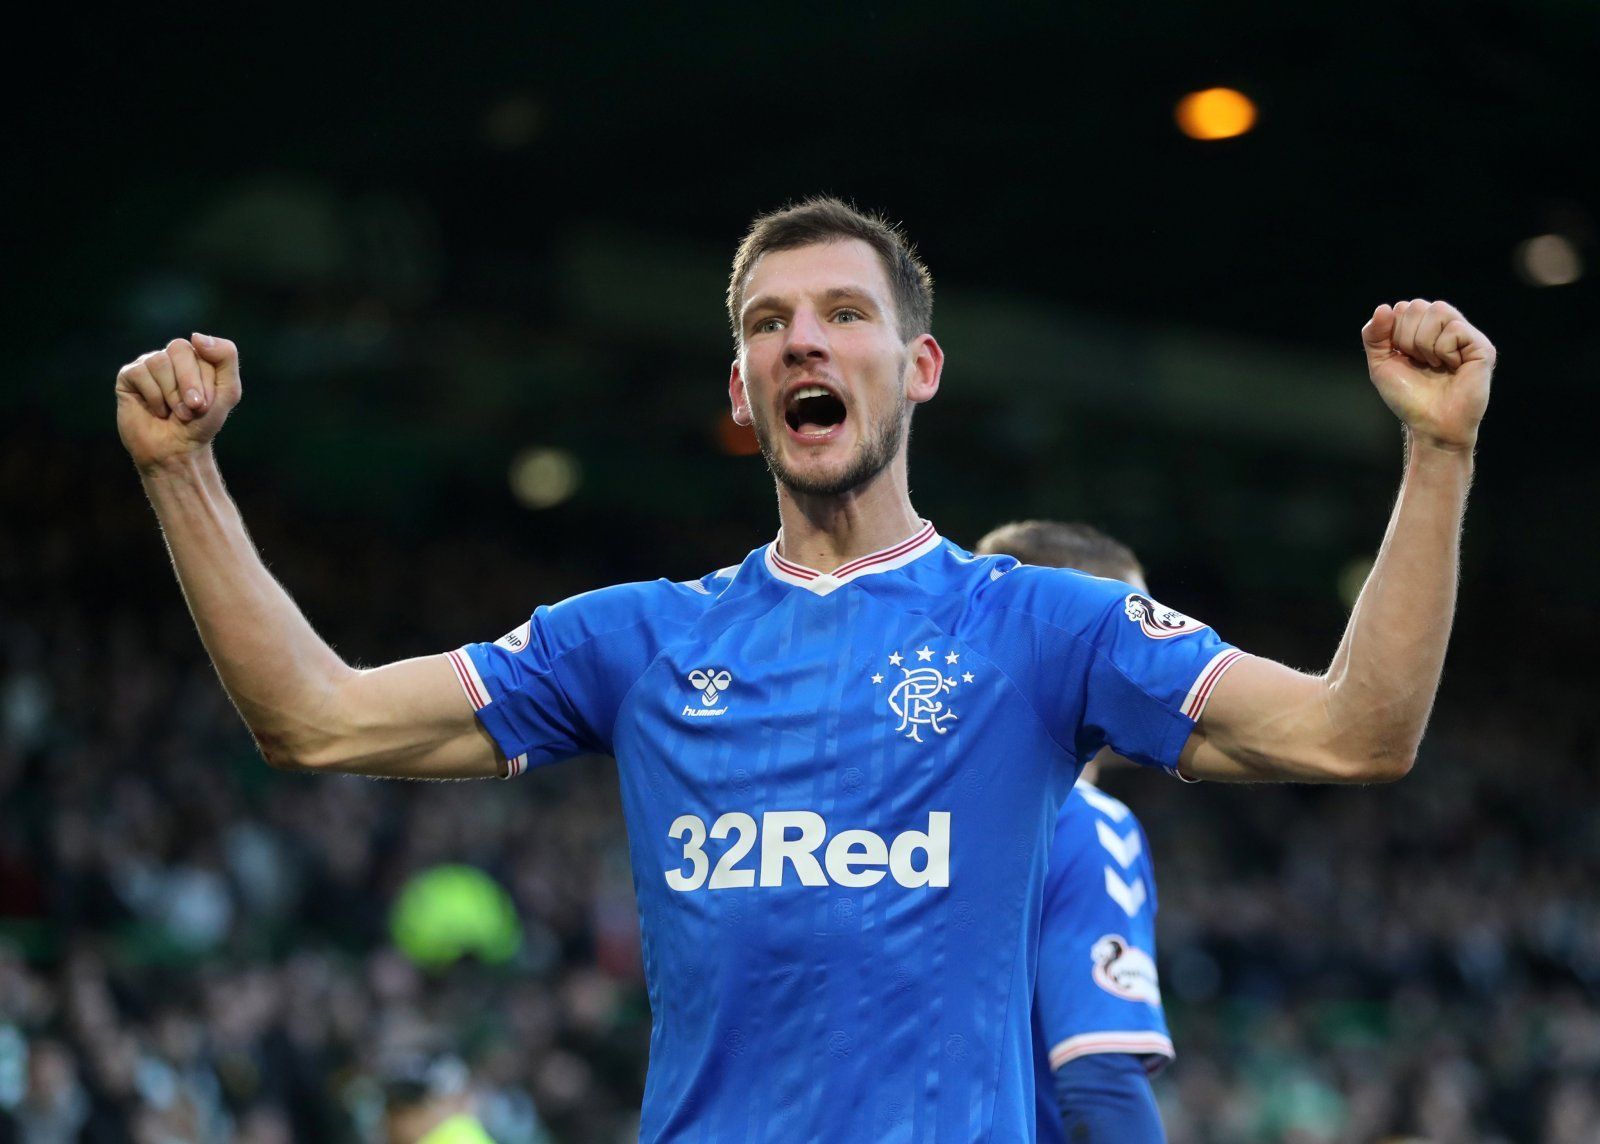 Rangers: Fans react to Borna Barisic transfer speculation